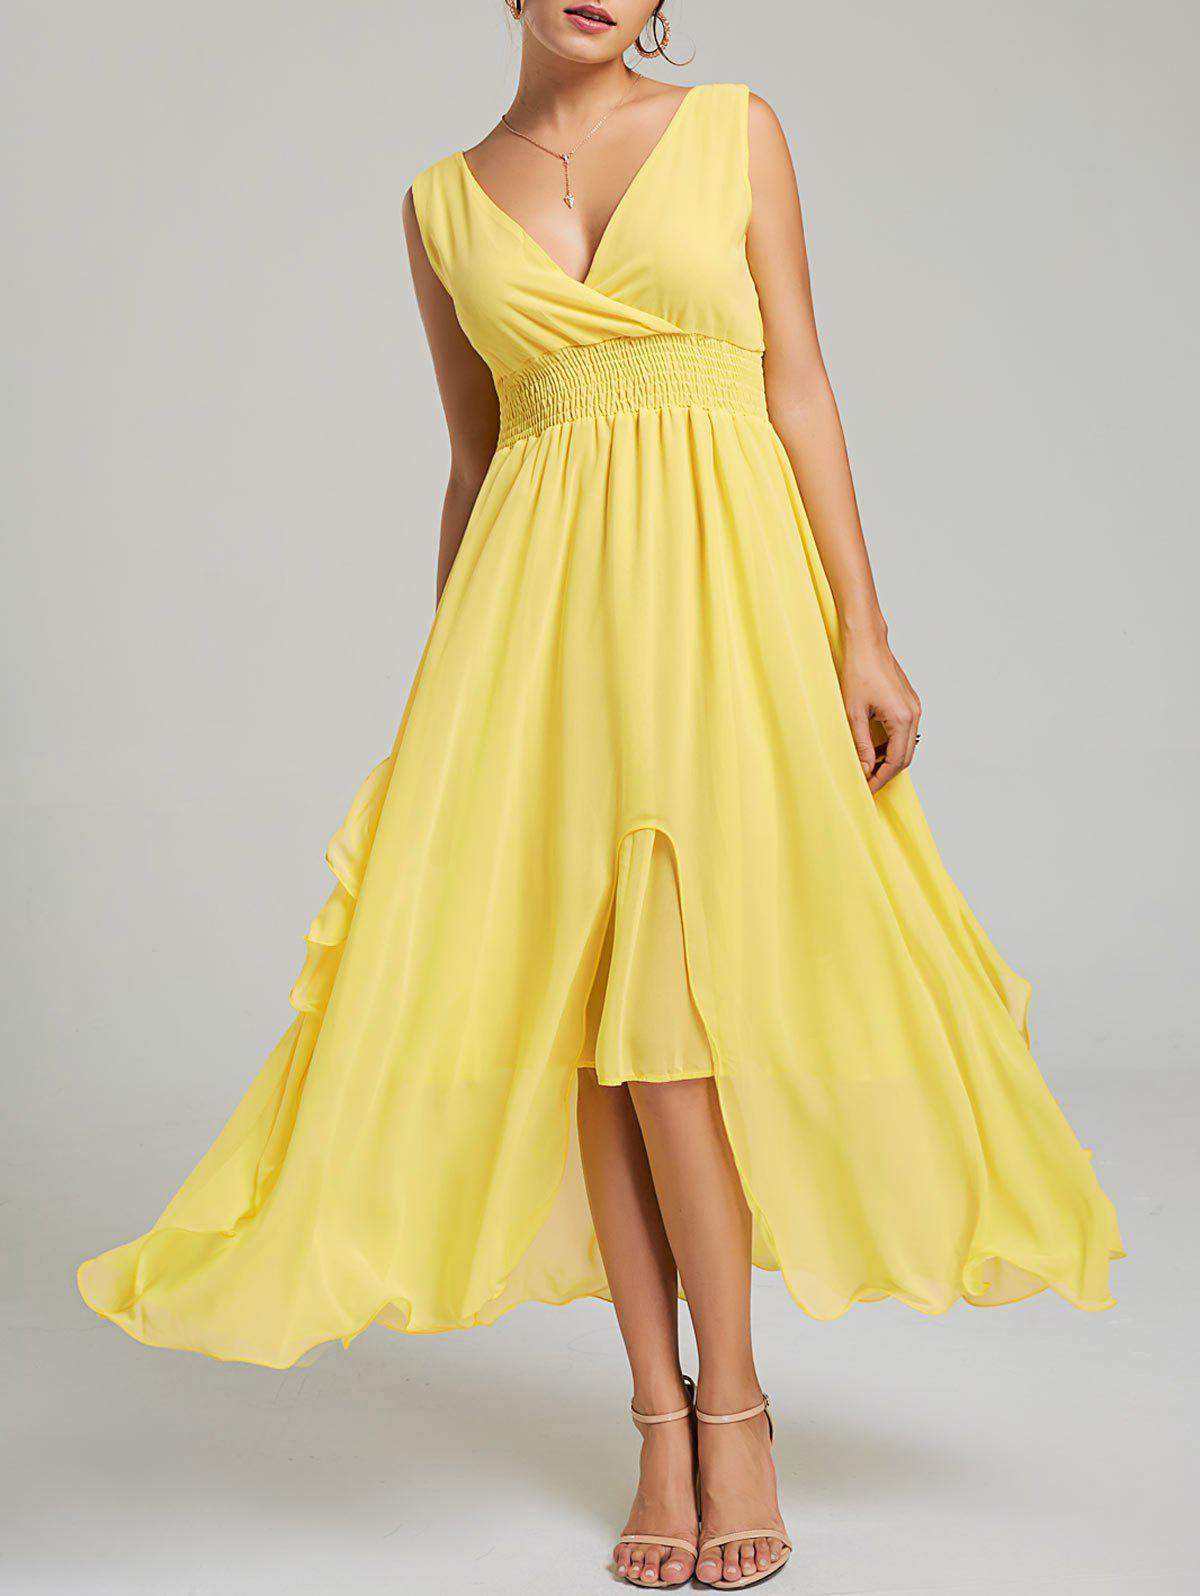 Empire Waist Chiffon Ruffle Dress - Jaune XL